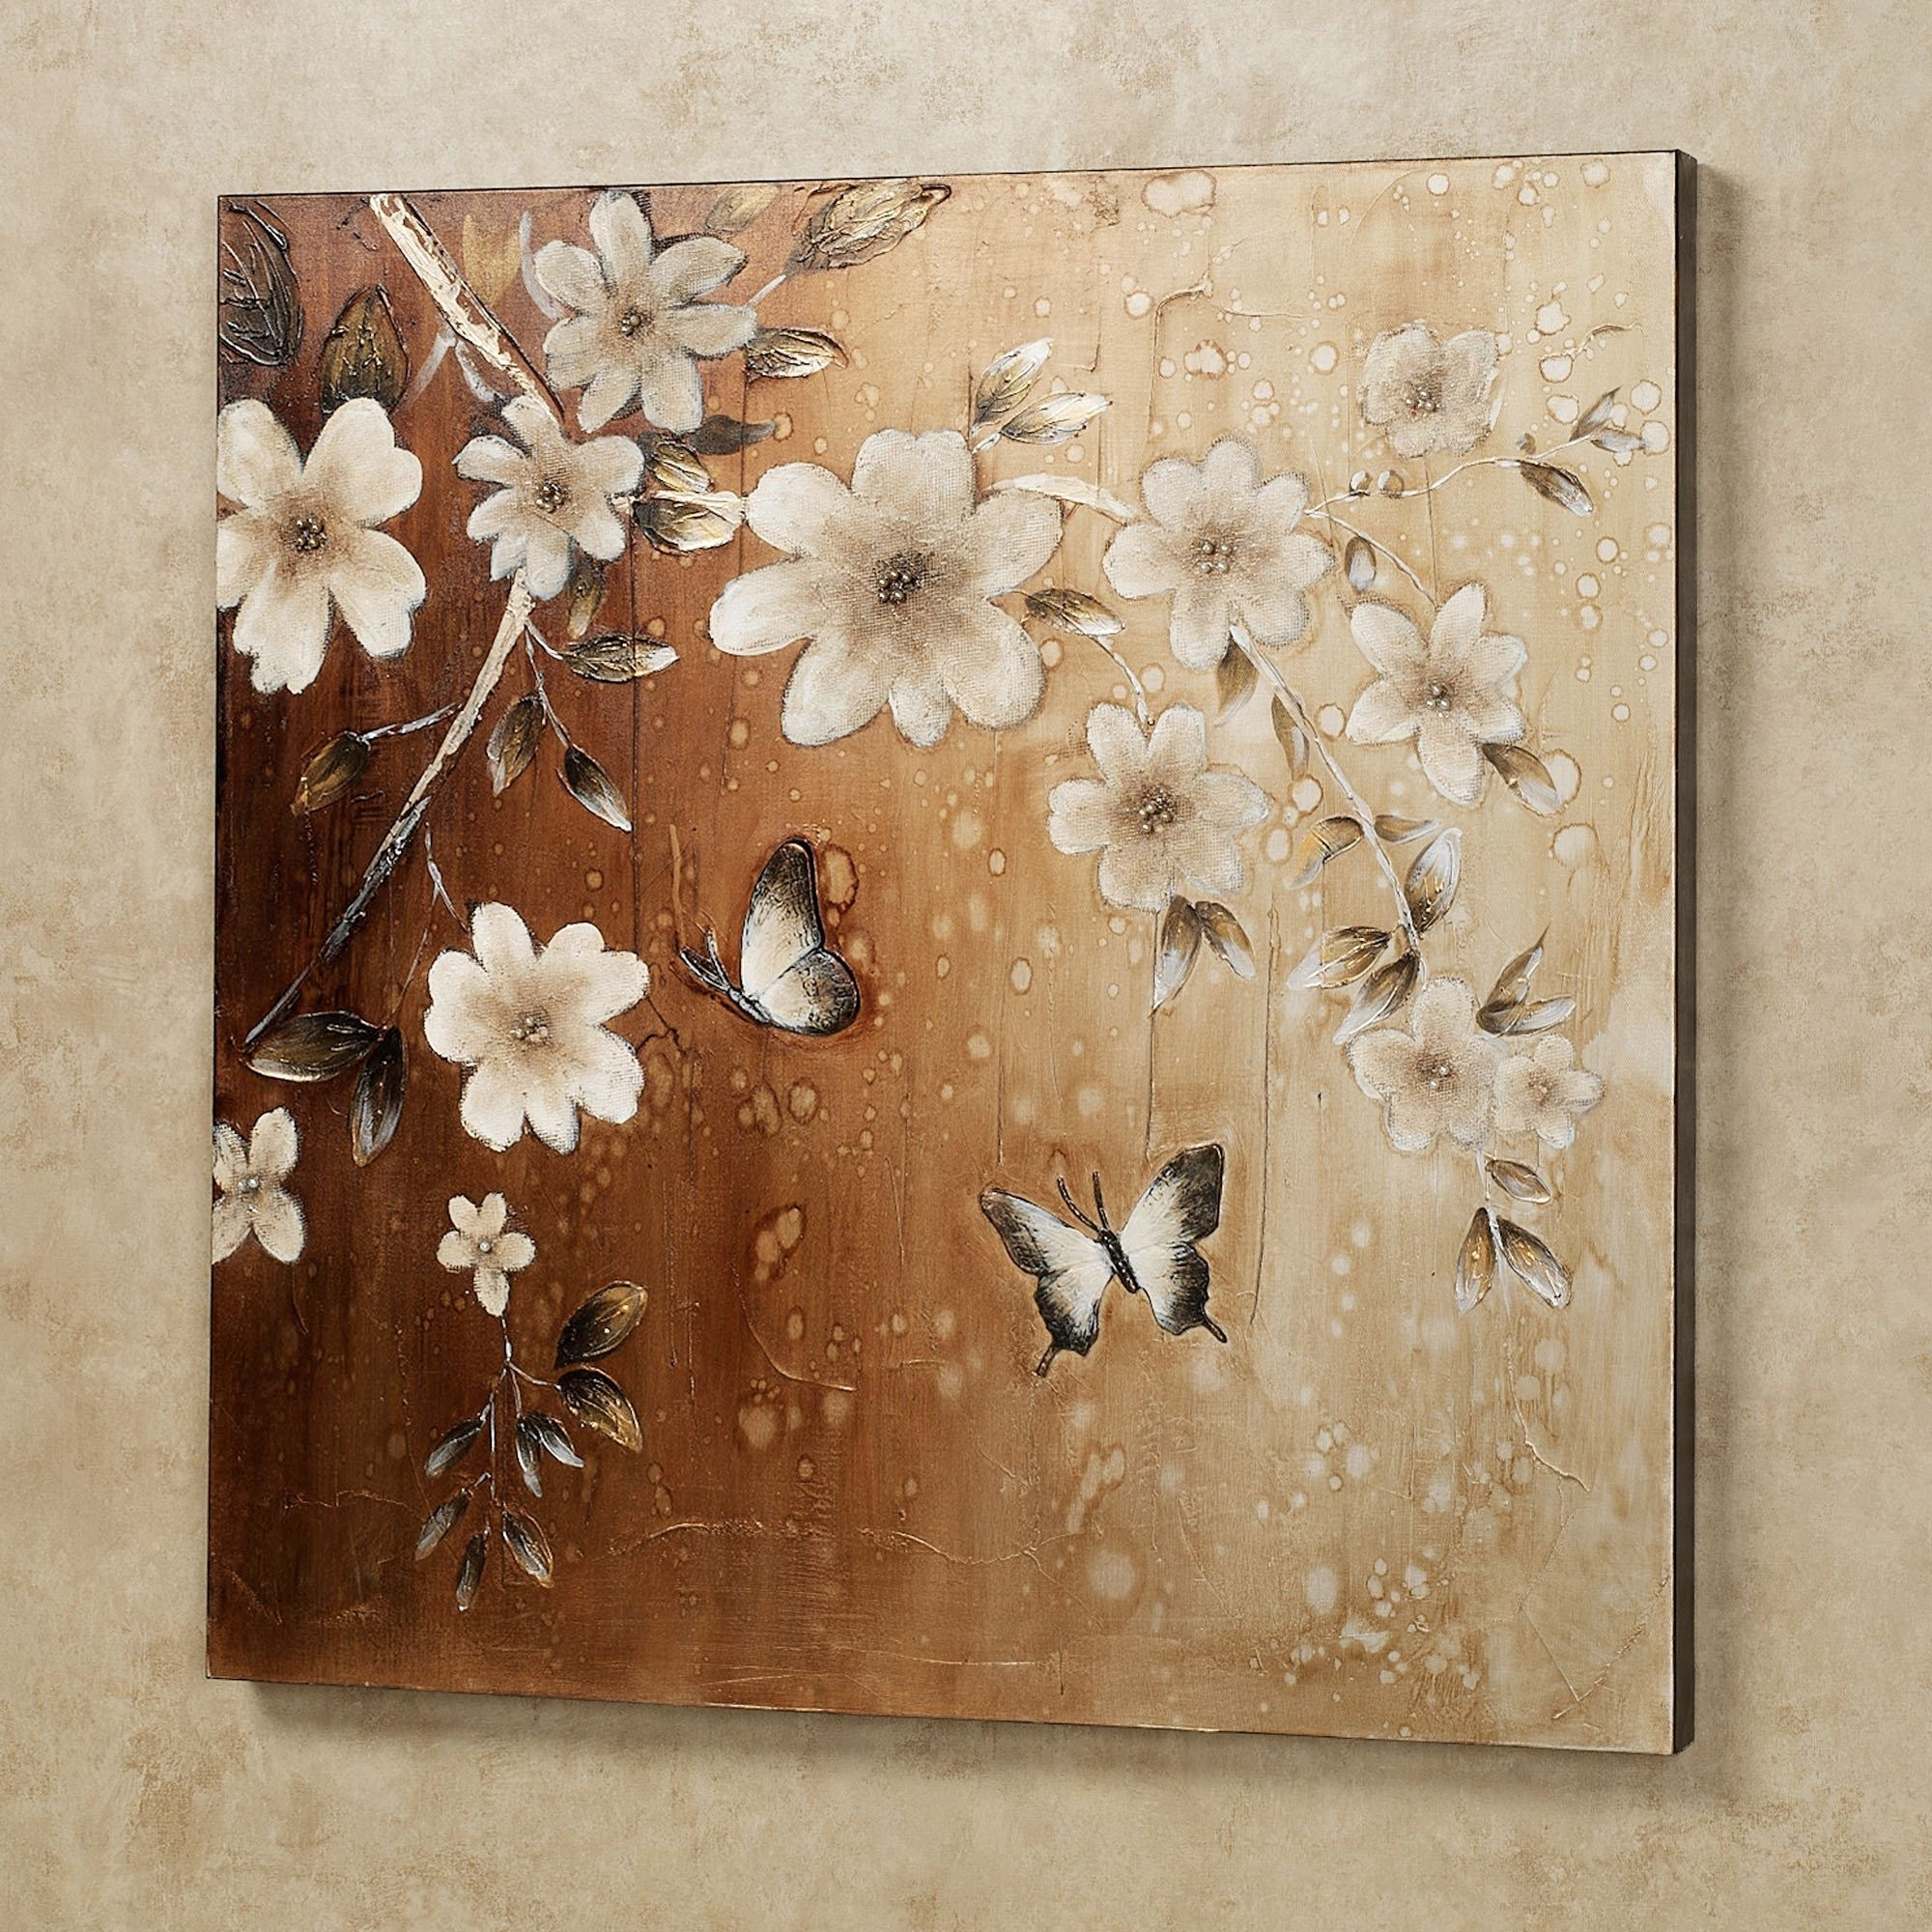 Wall Art Designs: Floral Canvas Wall Art Midday Sun Canvas Wall Intended For Most Recently Released Canvas Wall Art Of Flowers (View 13 of 15)